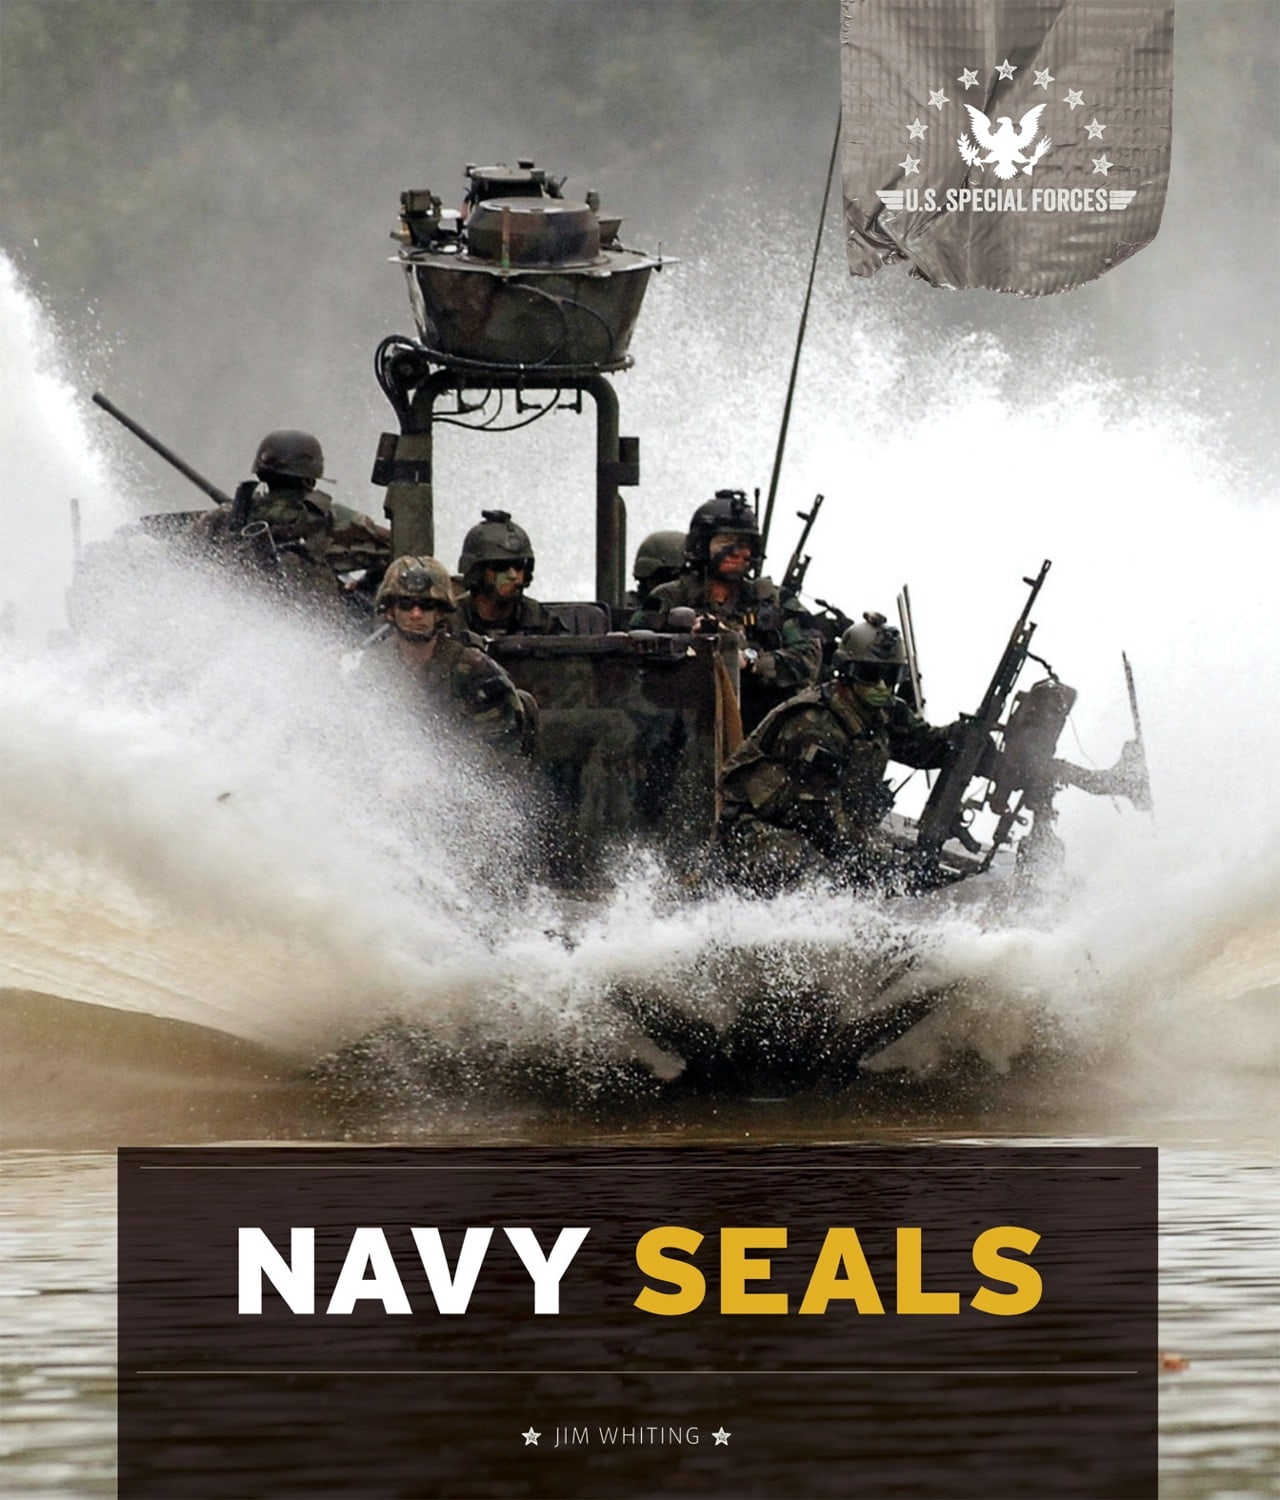 U.S. Special Forces: Navy SEALs